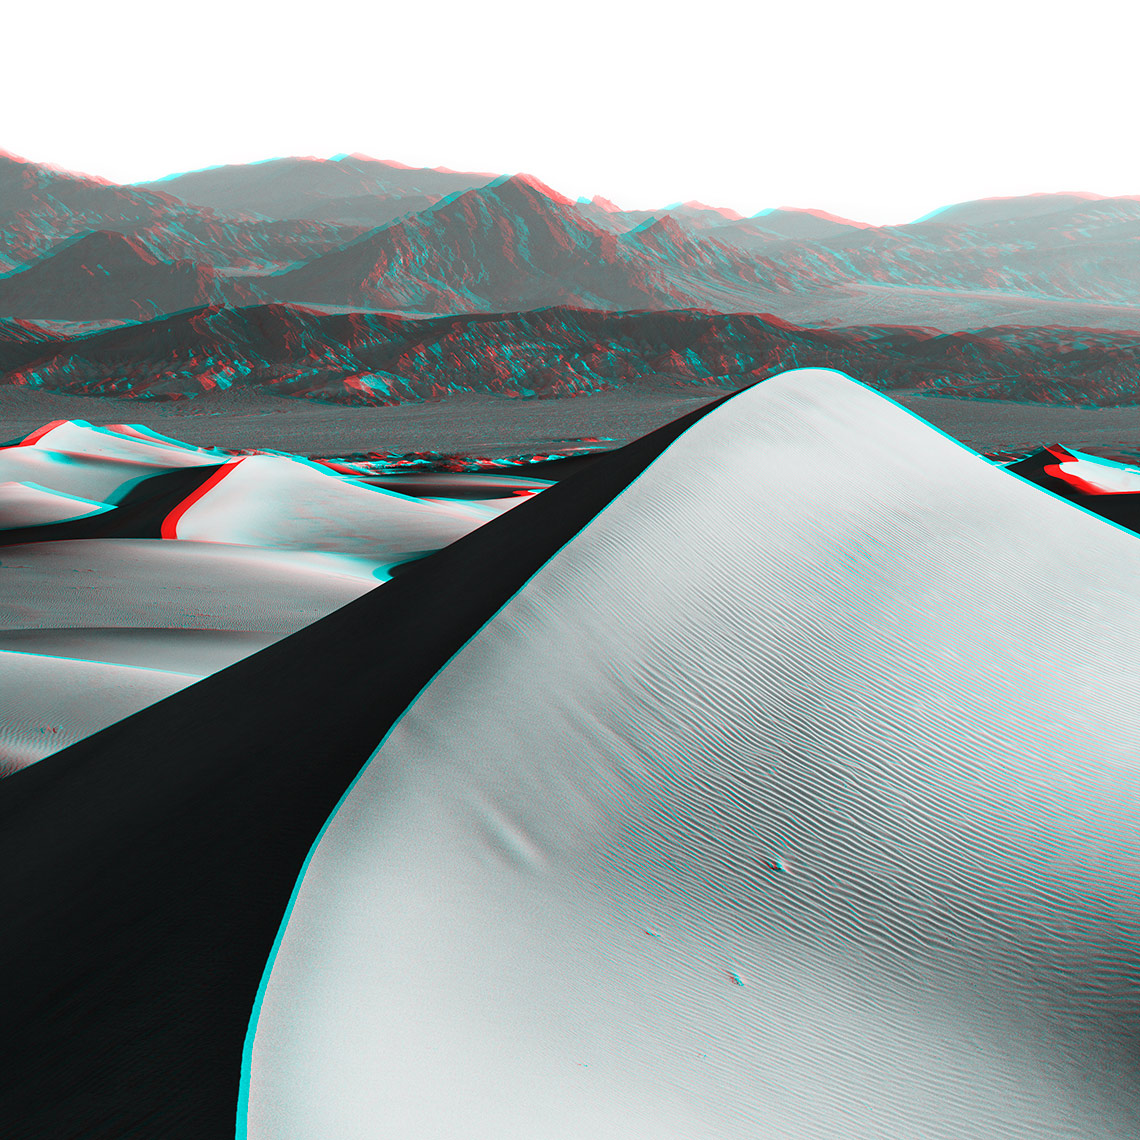 008-1303_DeathValley_Dunes_3D-034_Crop